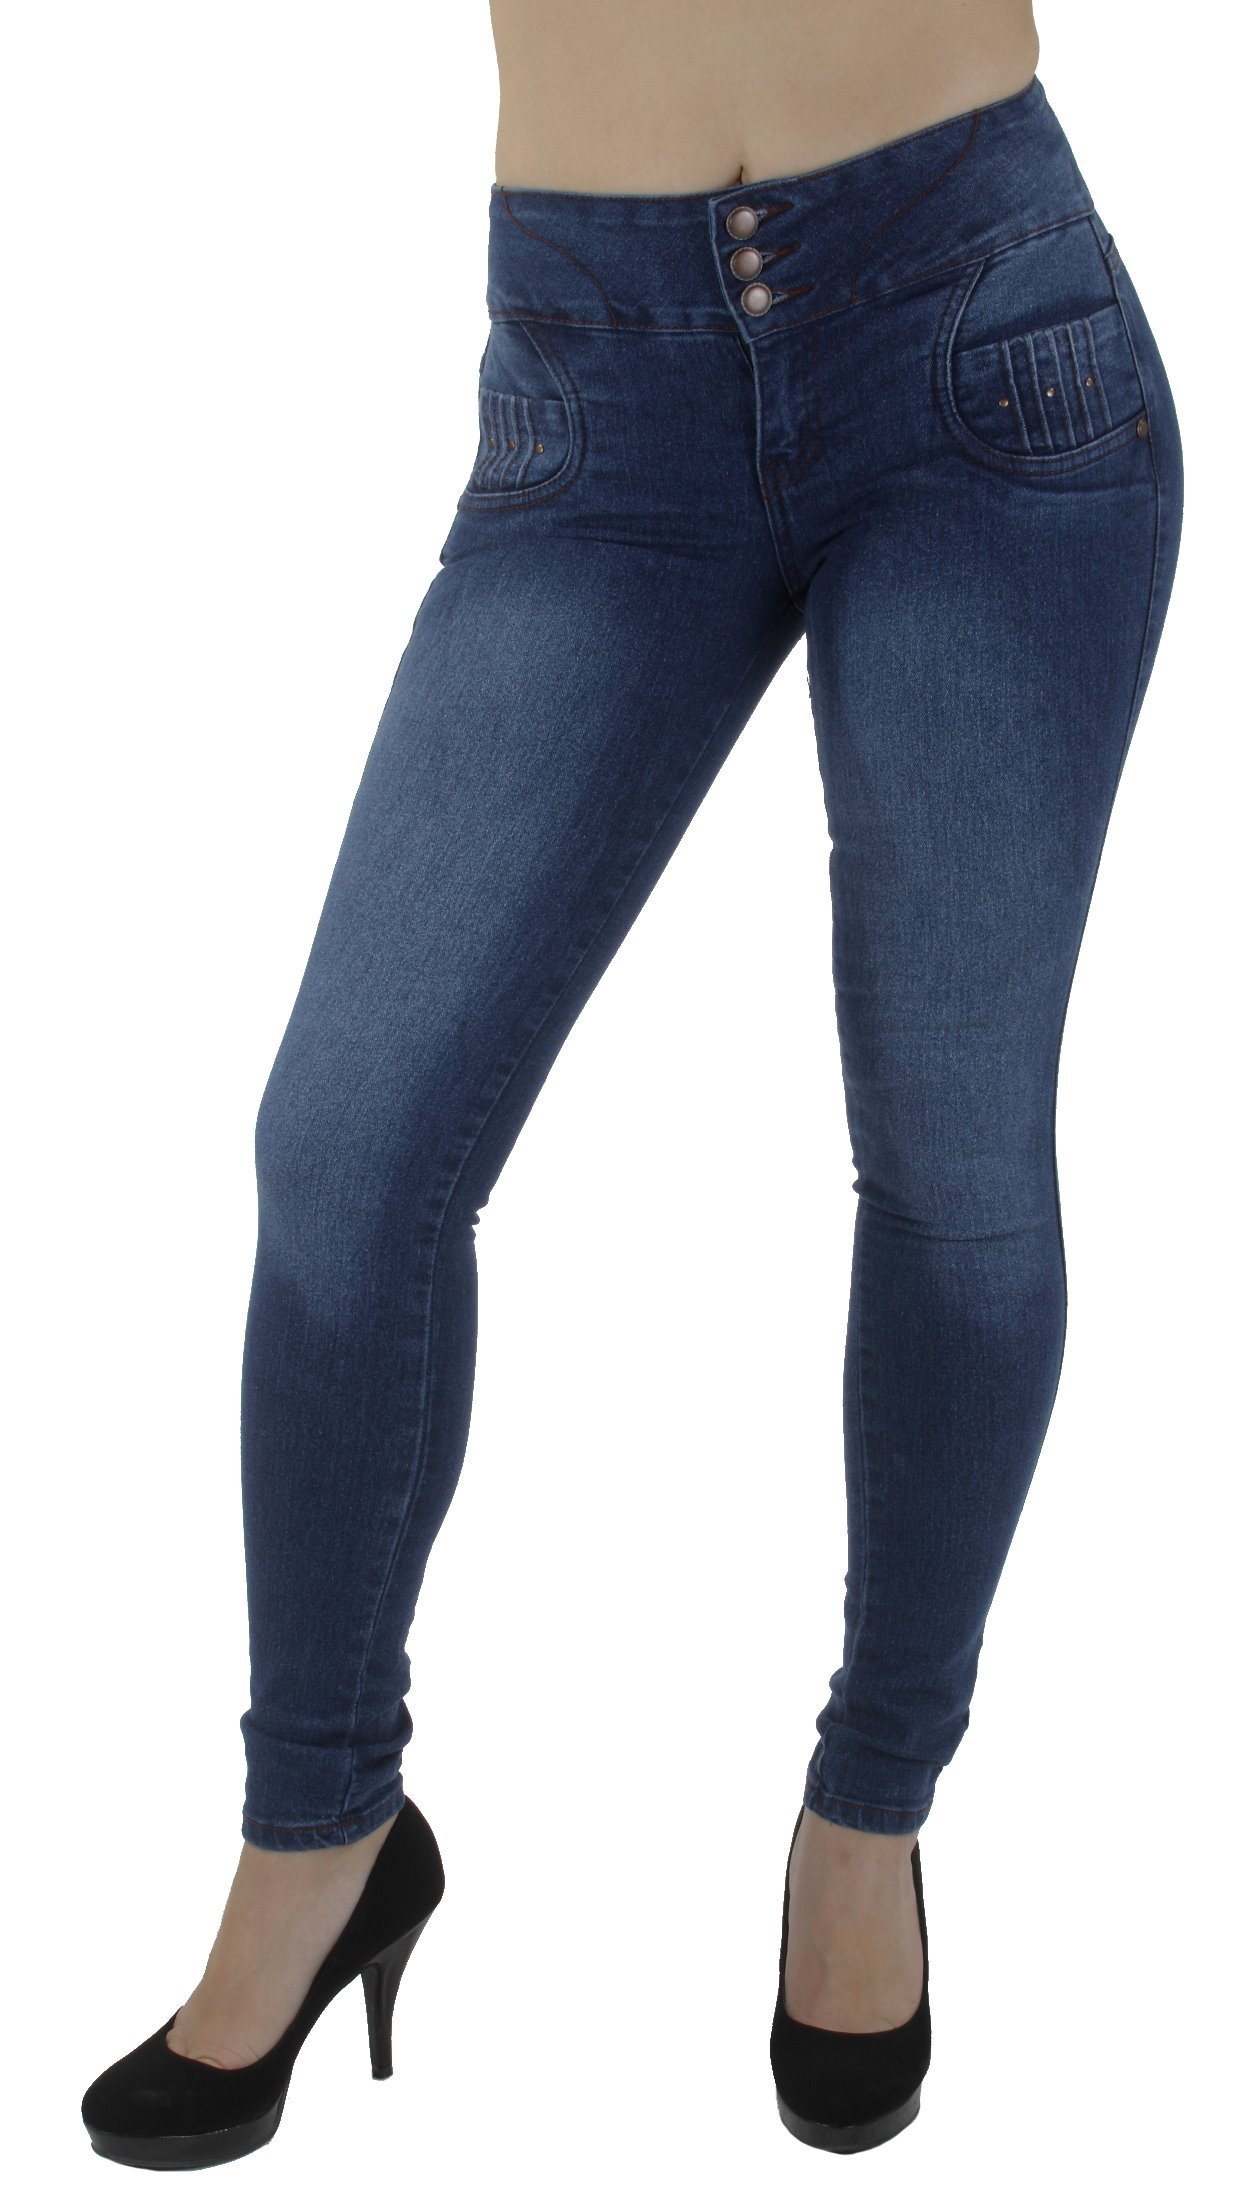 Style M1065- Colombian Design, Mid Waist, Butt Lift, Levanta Cola, Skinny Jeans in M. Blue Size 9